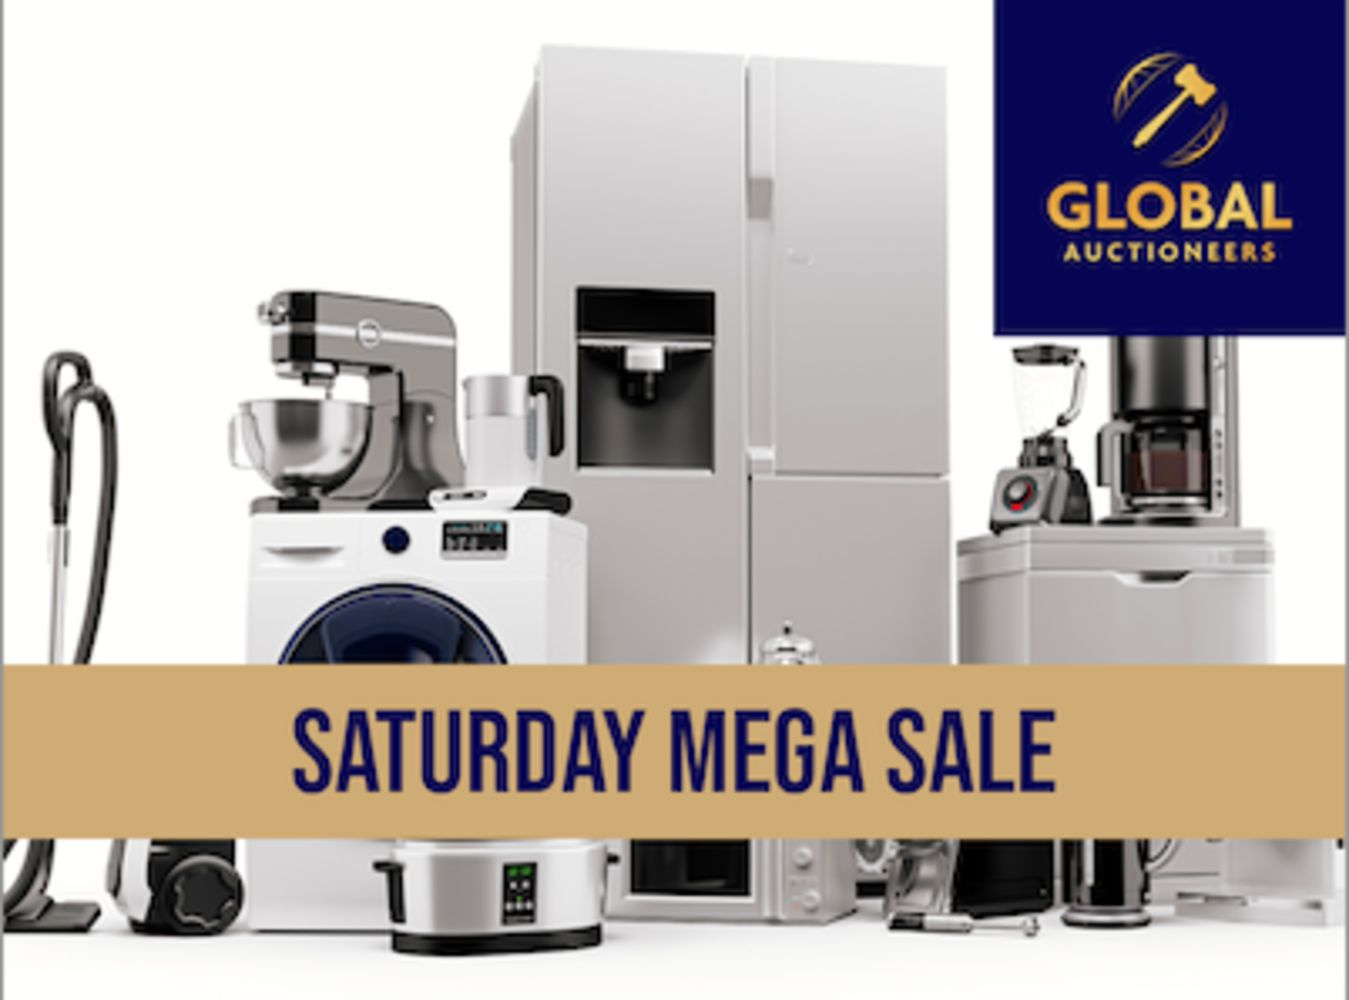 No Reserve - TIMED - Saturday Mega Auction!!! 18th September 2021